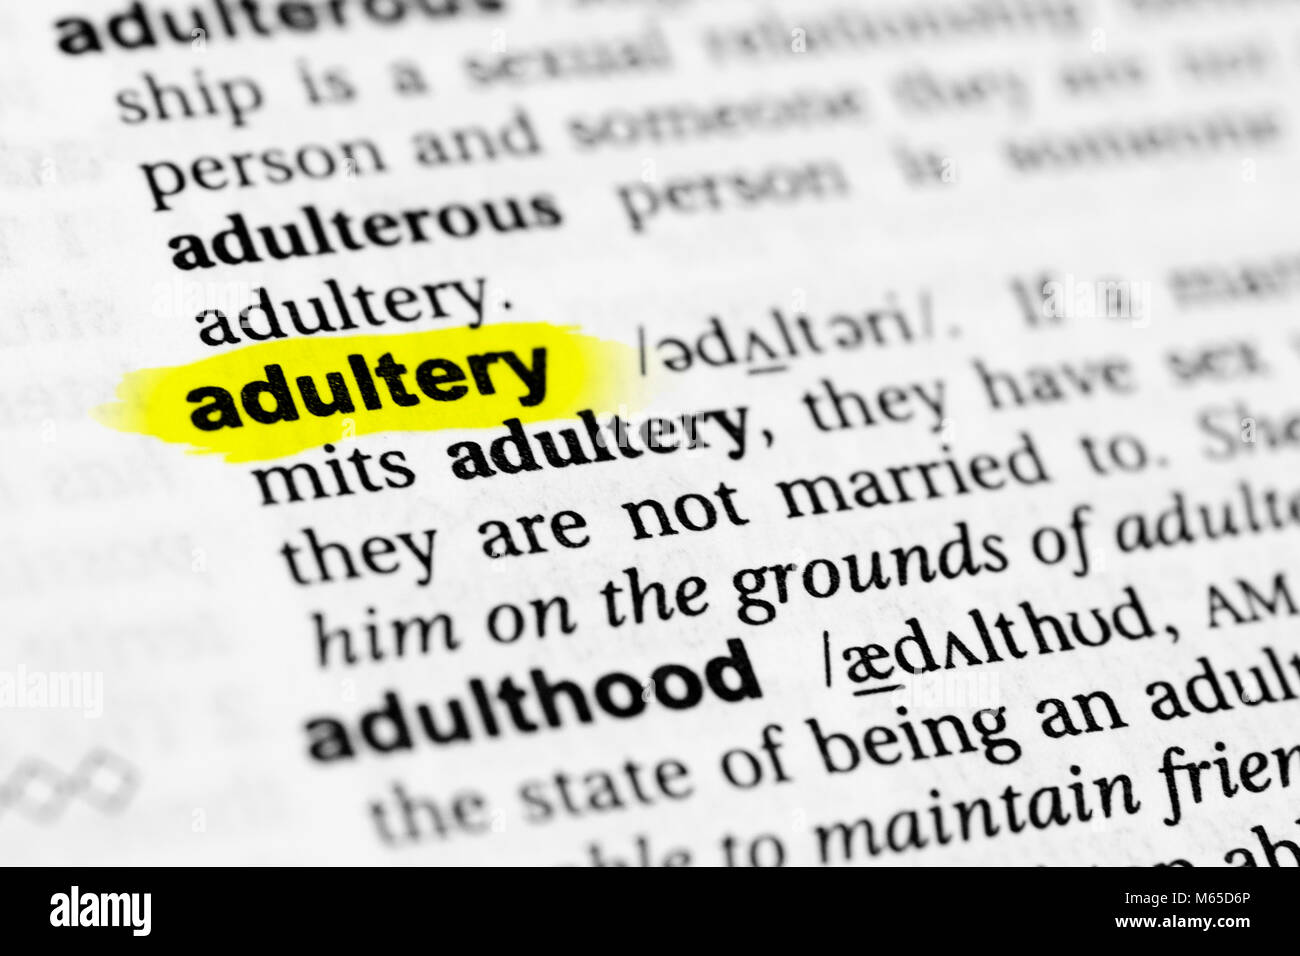 Adultery Stock Photos & Adultery Stock Images - Alamy